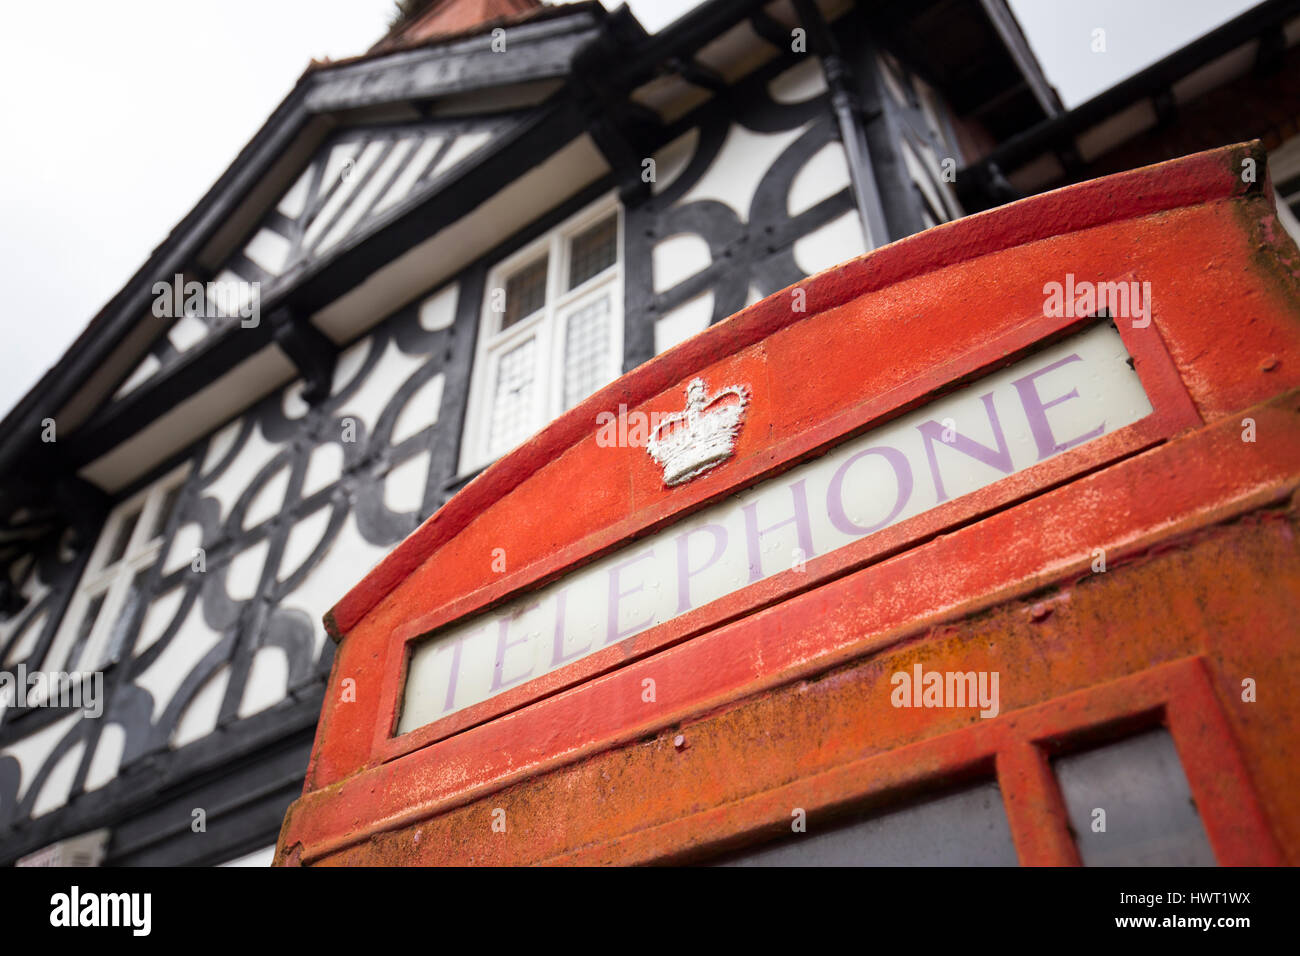 Port Sunlight - a model village and suburb in the Metropolitan Borough of Wirral, Merseyside. Traditional red phone - Stock Image